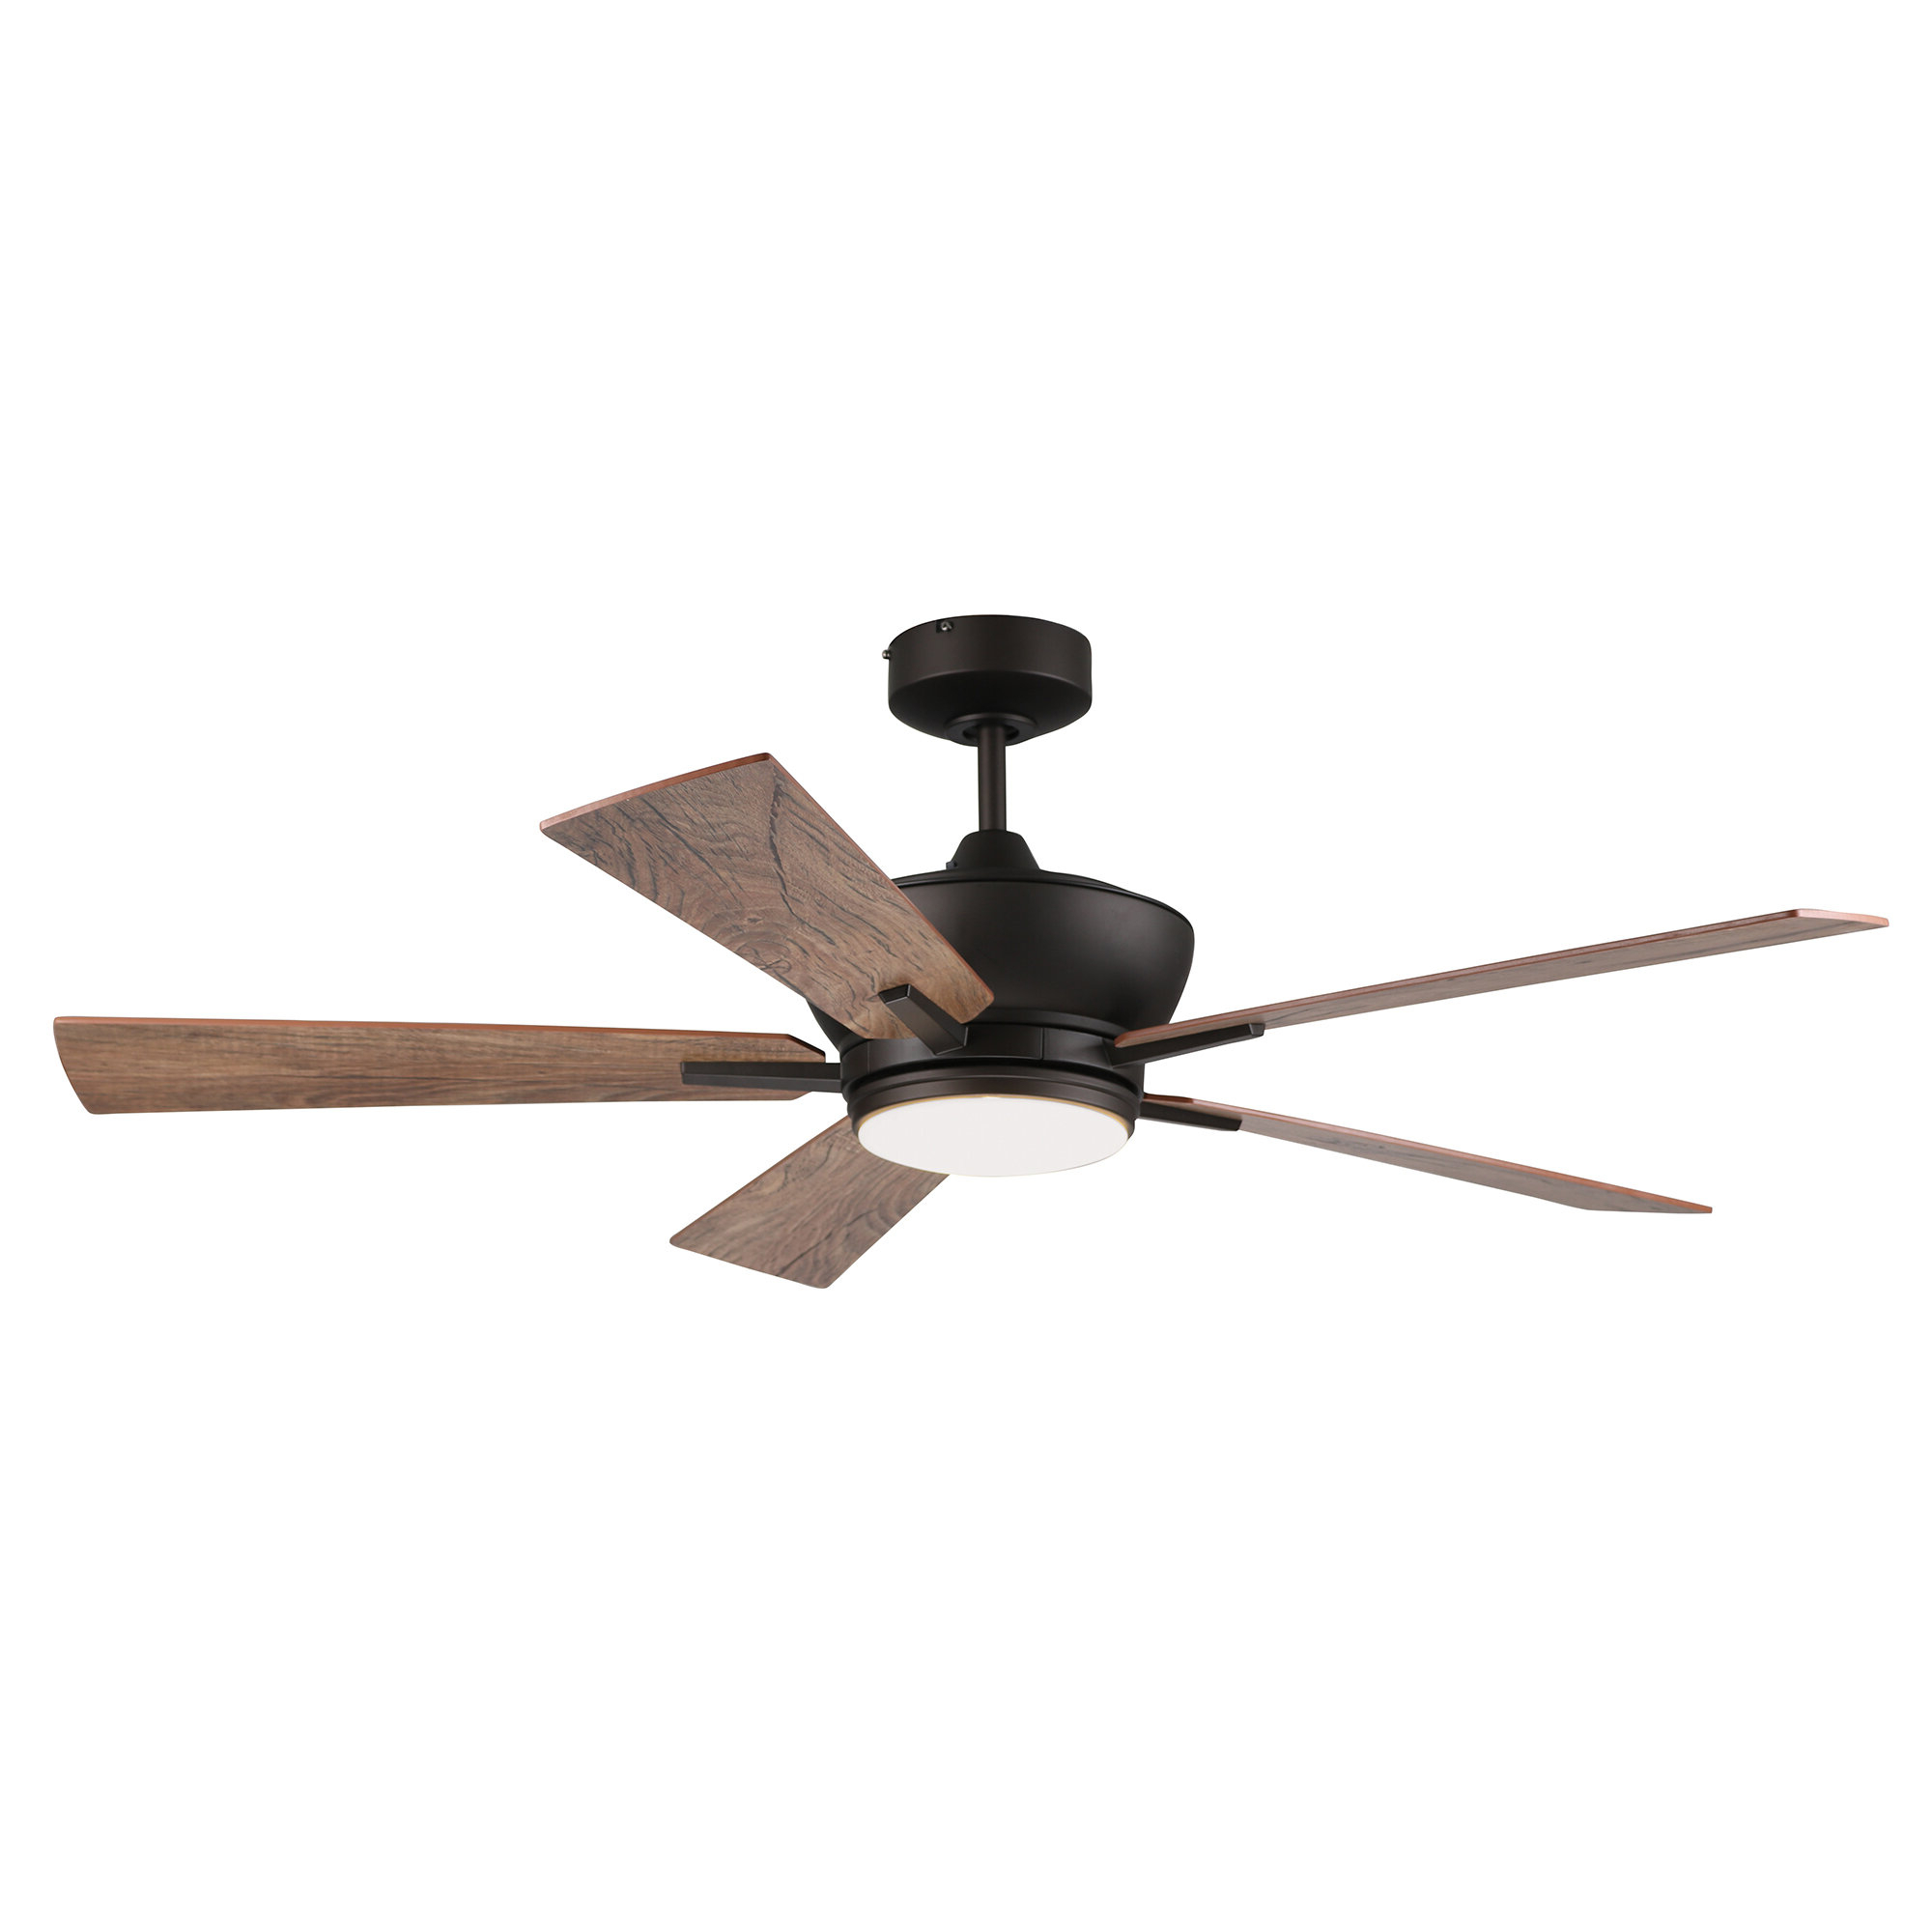 "Cillian 6 Blade Ceiling Fans For Favorite 52"" Georgetown Tri Mount 5 Blade Ceiling Fan With Remote, Light Kit Included (View 9 of 20)"